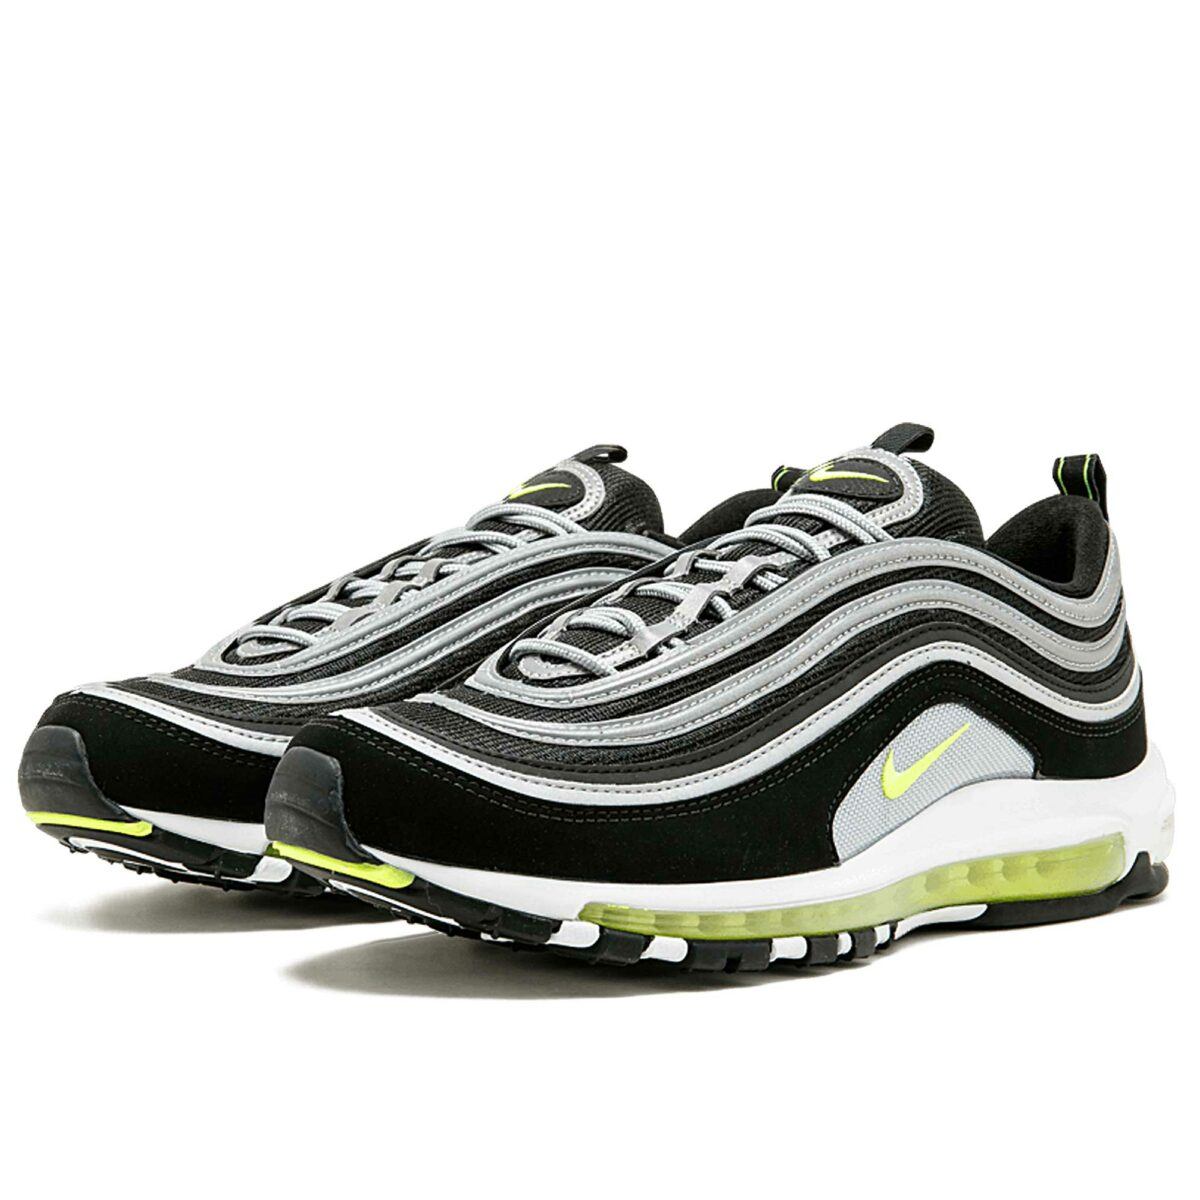 nike air max 97 black volt 921826_004 купить